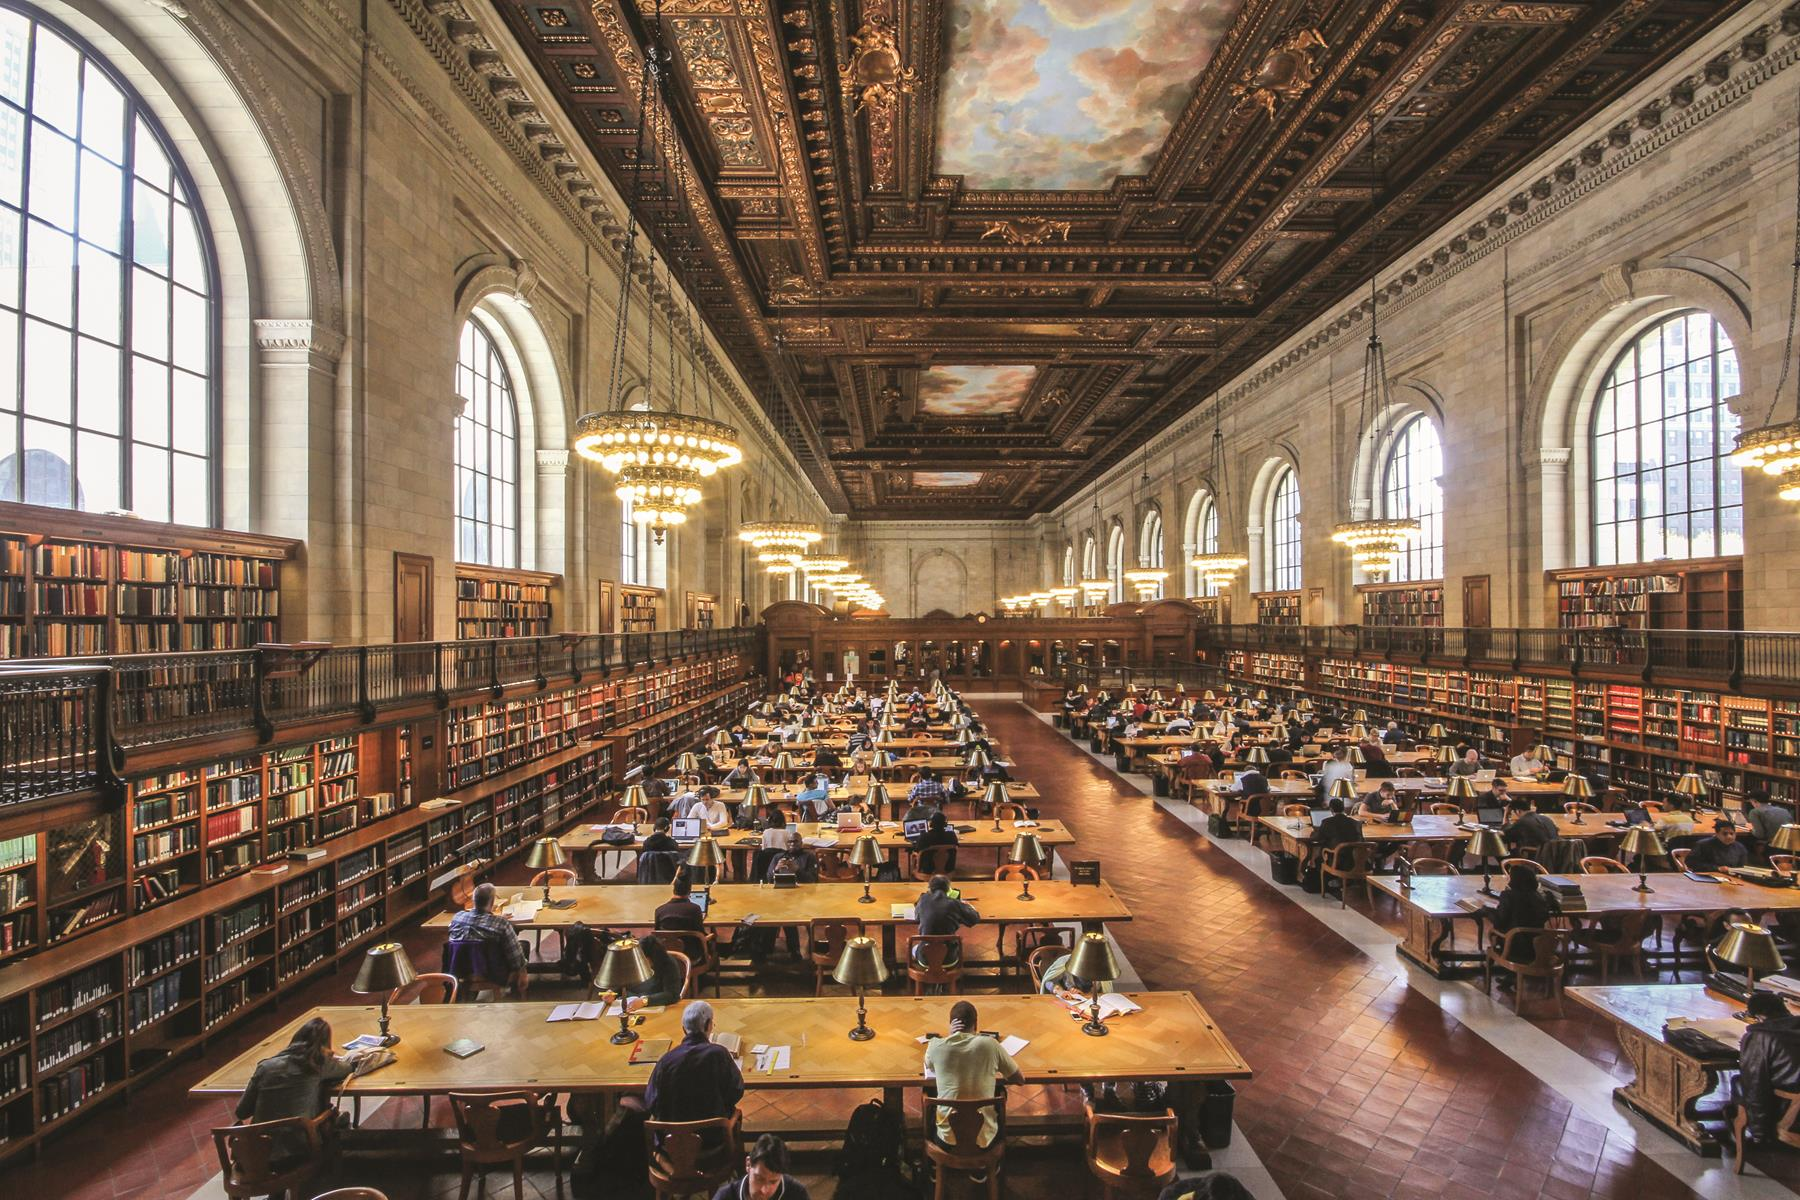 The New York Public Library's magnificent Rose Main Reading Room